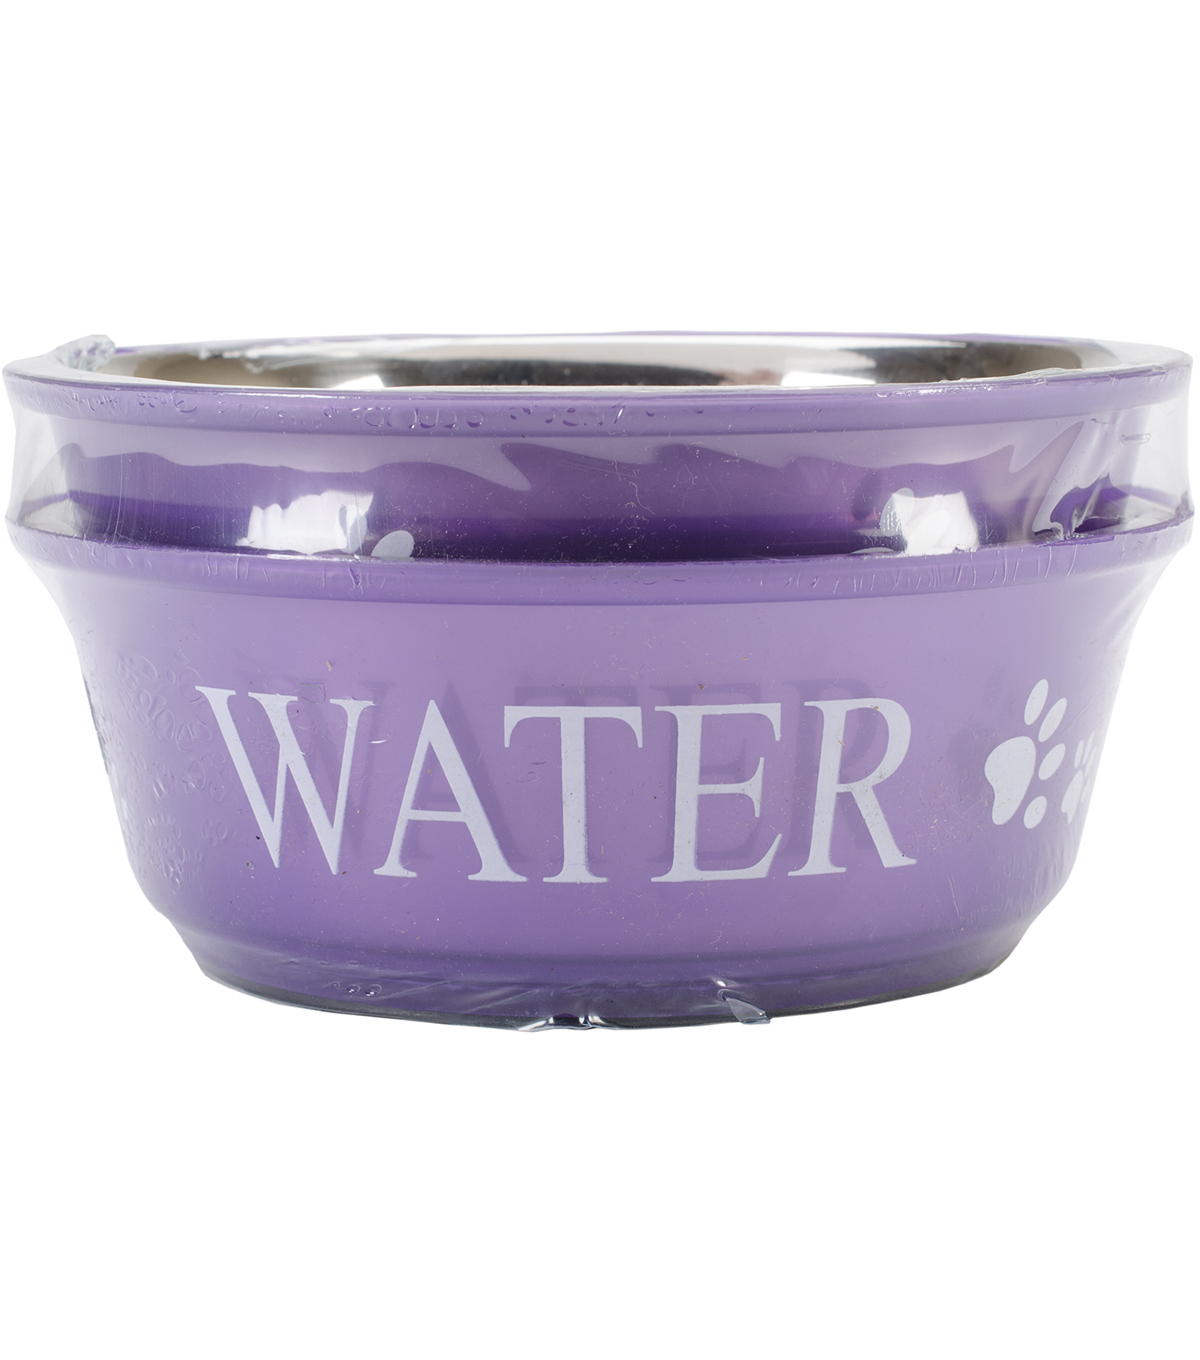 Buddy\u0027s Line Food & Water Lilac Bowl Set Medium